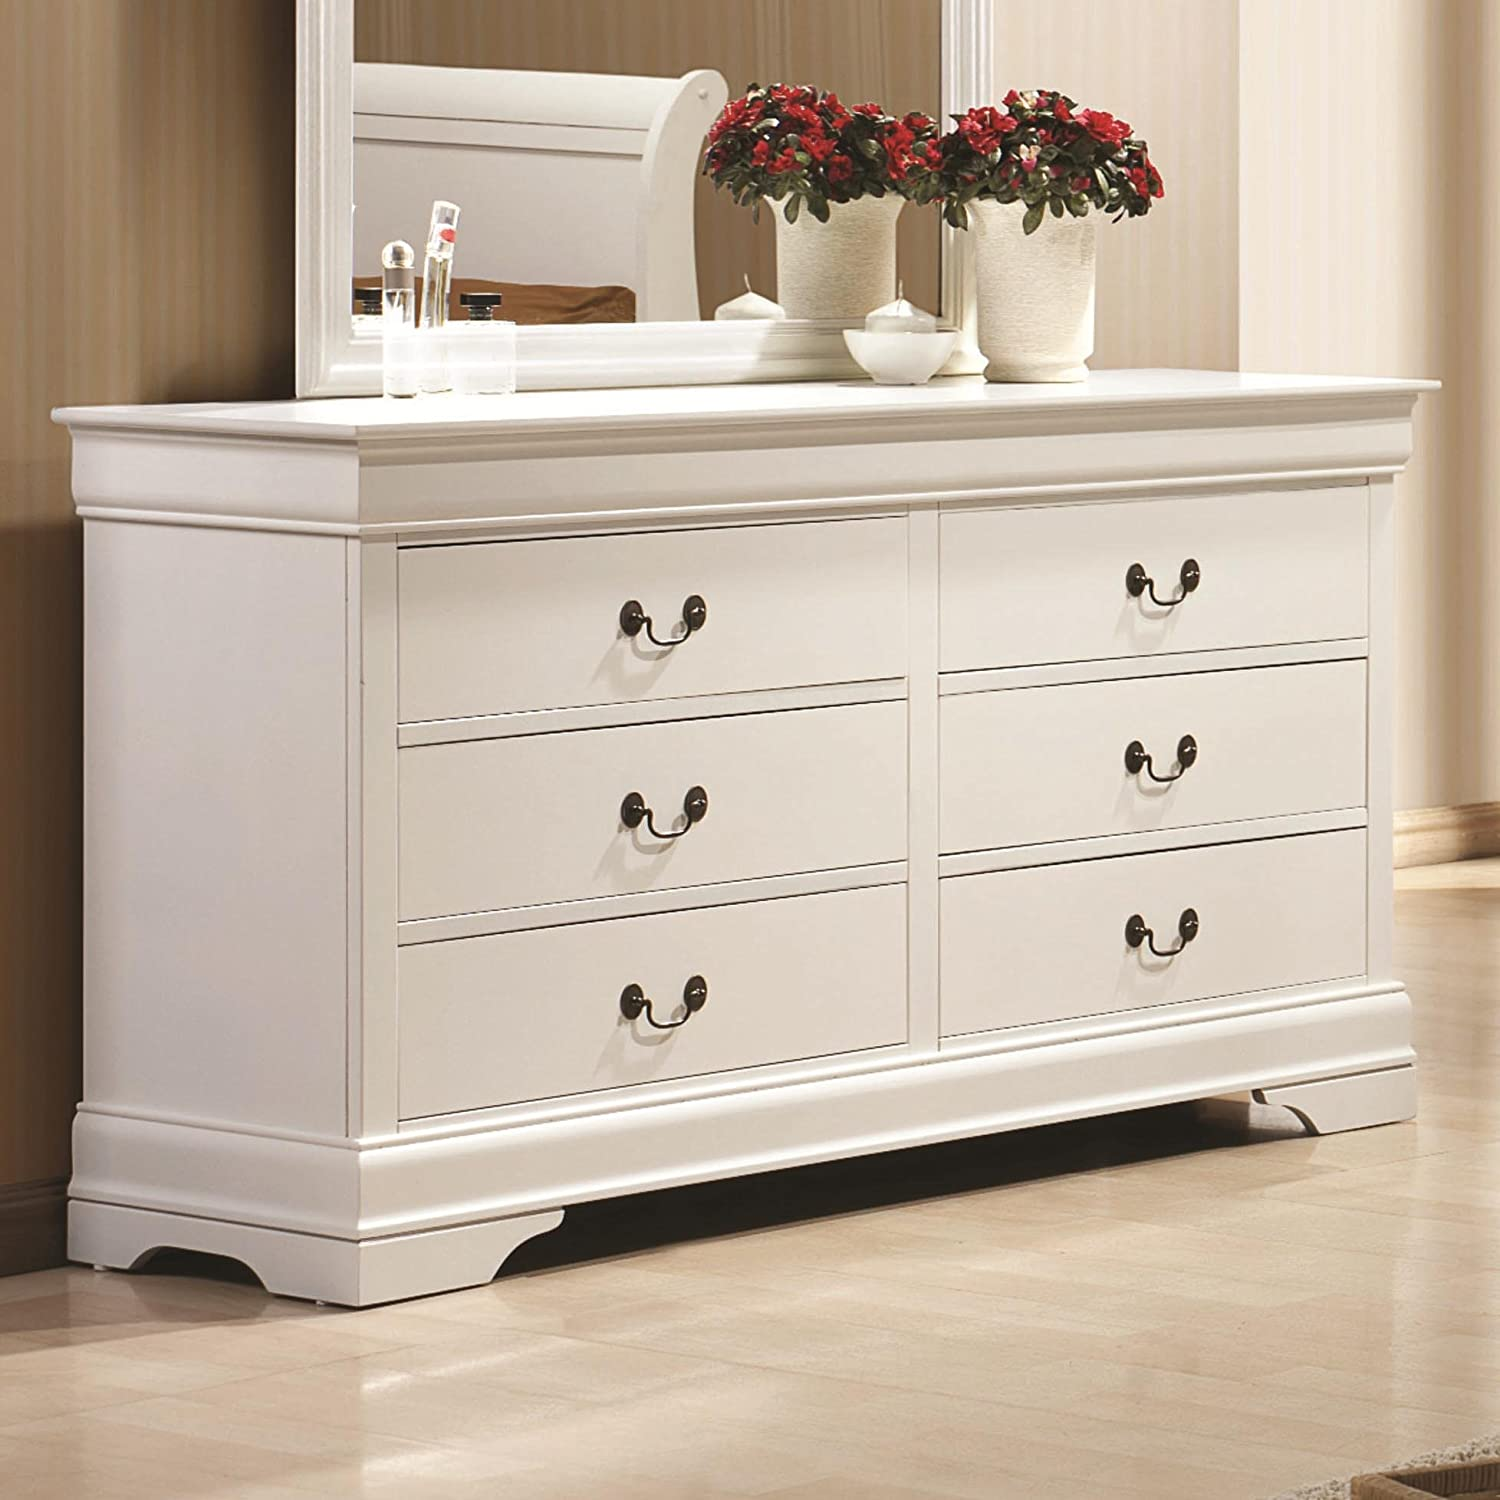 Amazon.com: Coaster Home Furnishings 204693 Traditional Dresser, White:  Kitchen U0026 Dining